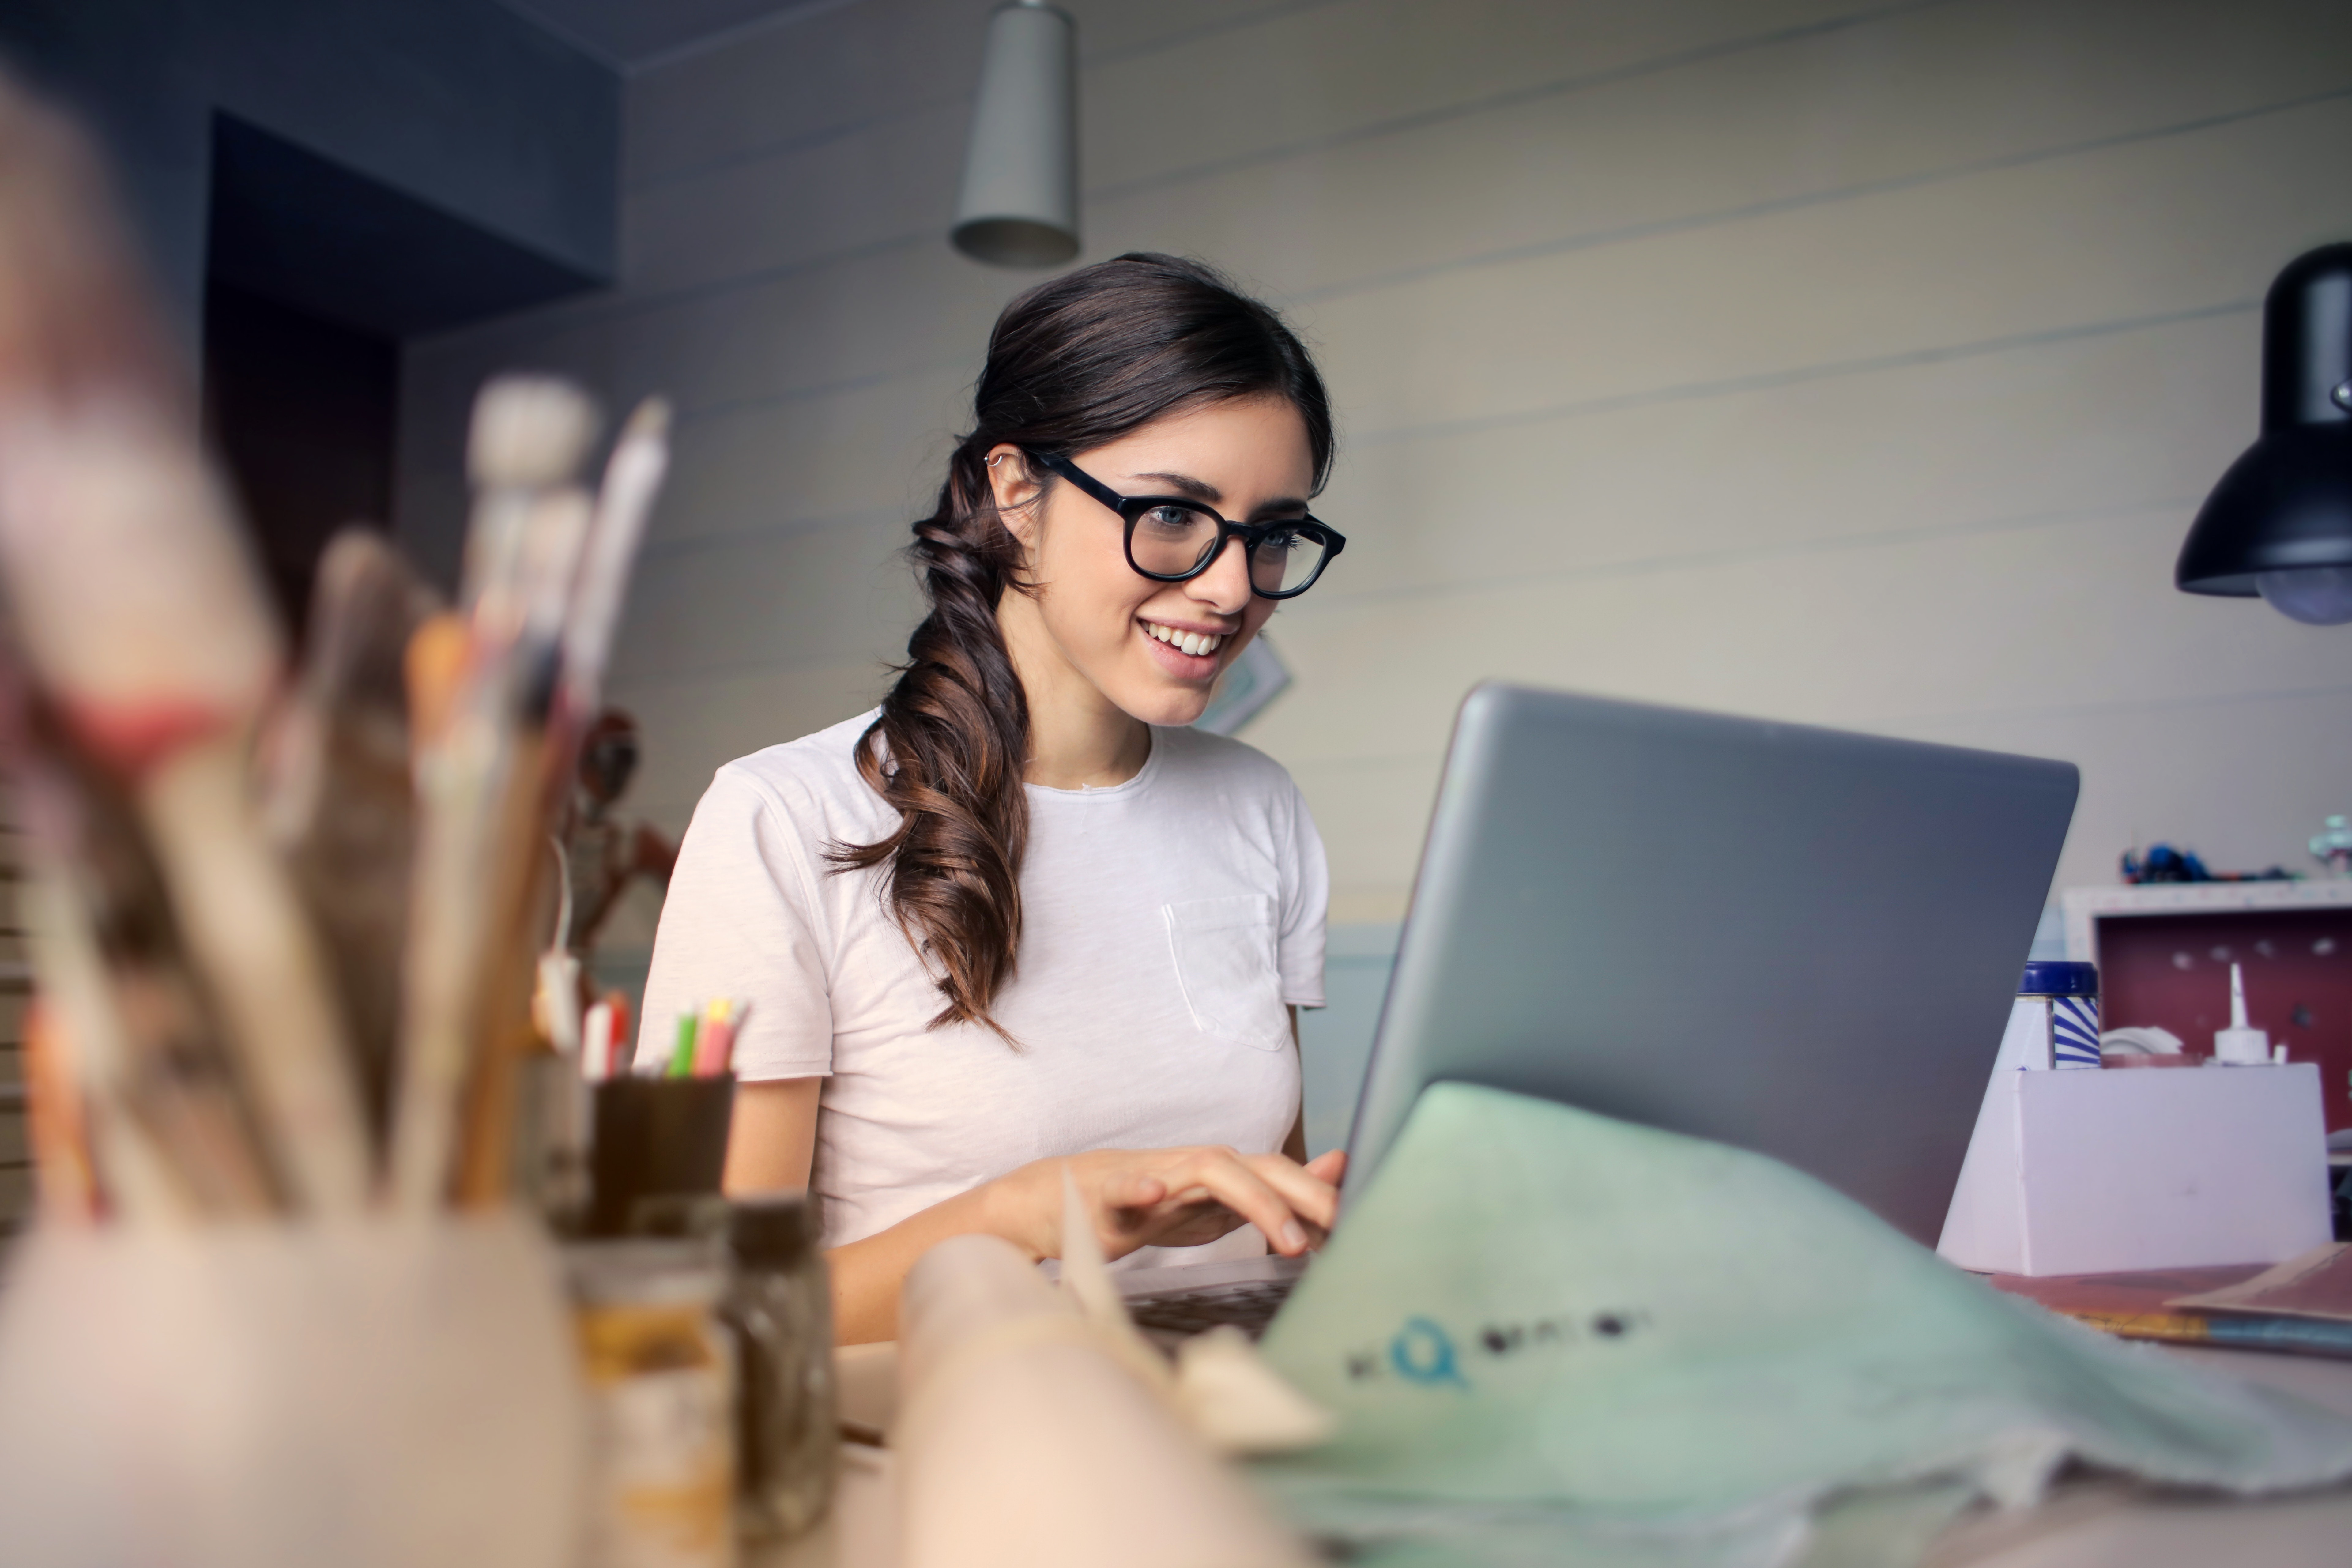 Person on laptop in a studio smiling